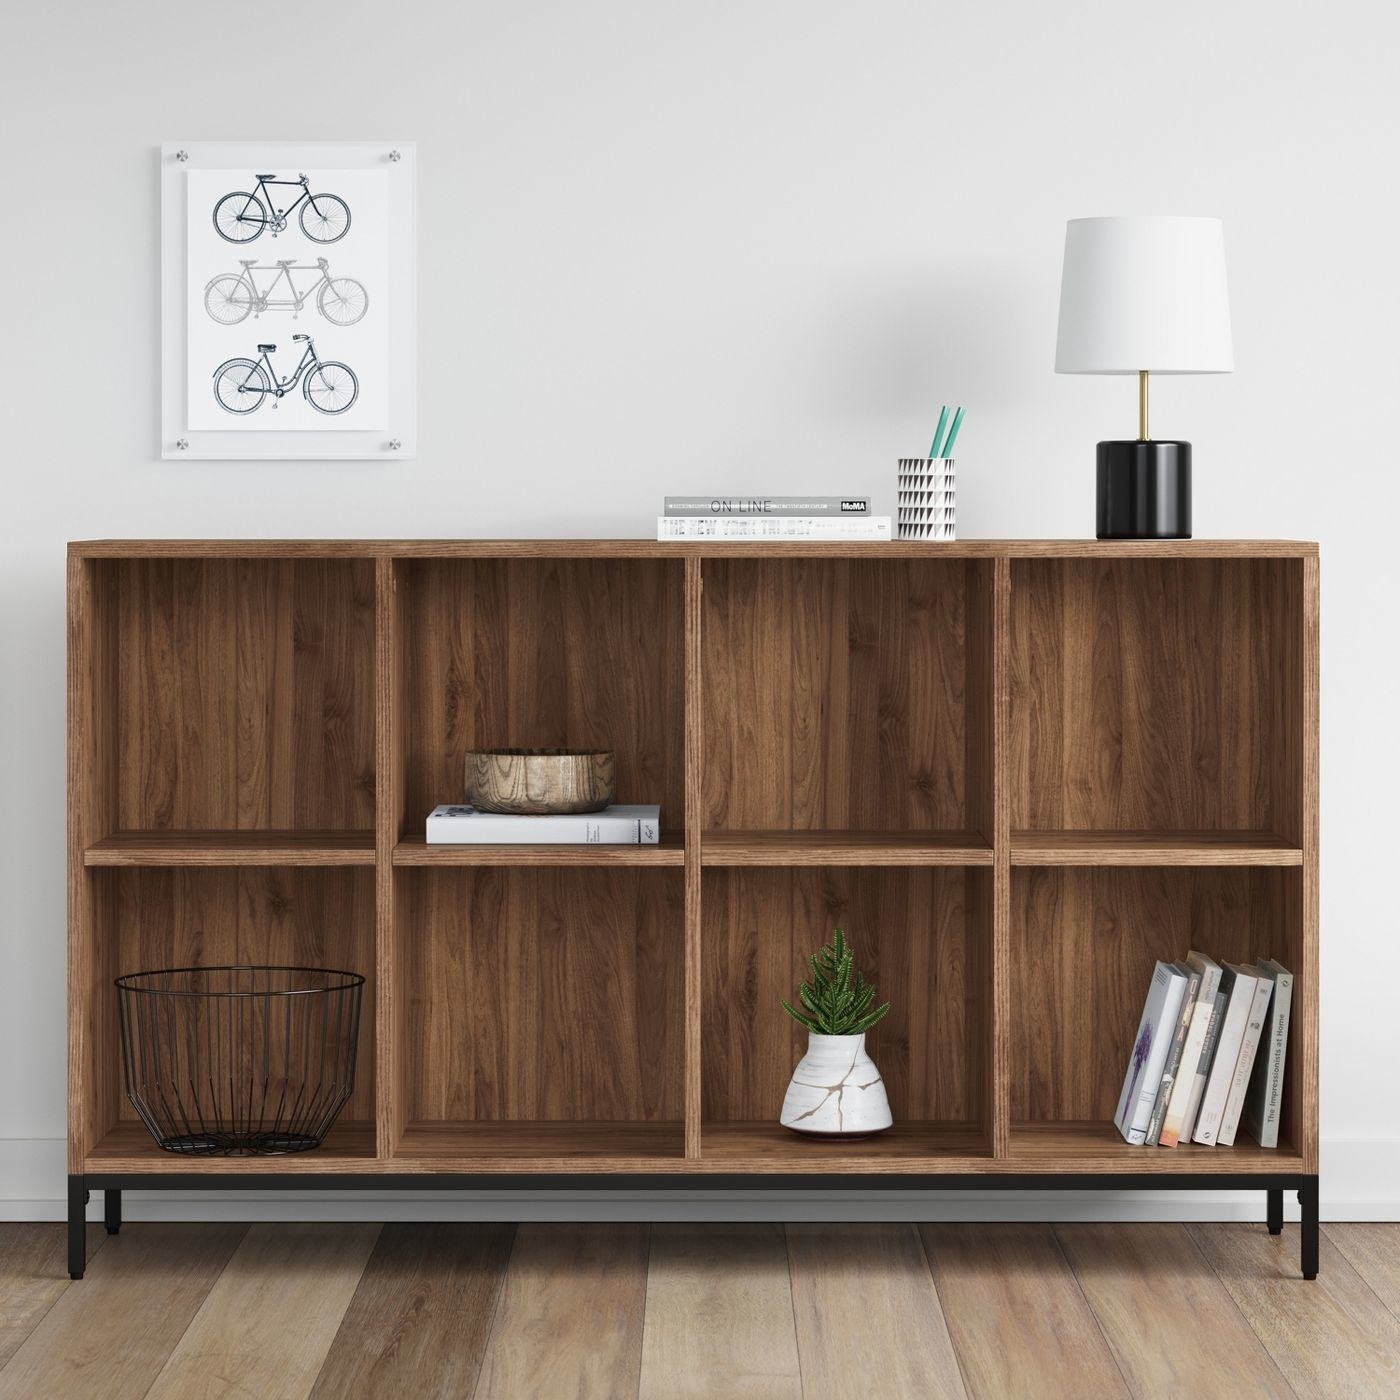 wood 8-cube bookcase with home decor on the shelves and a lamp on top